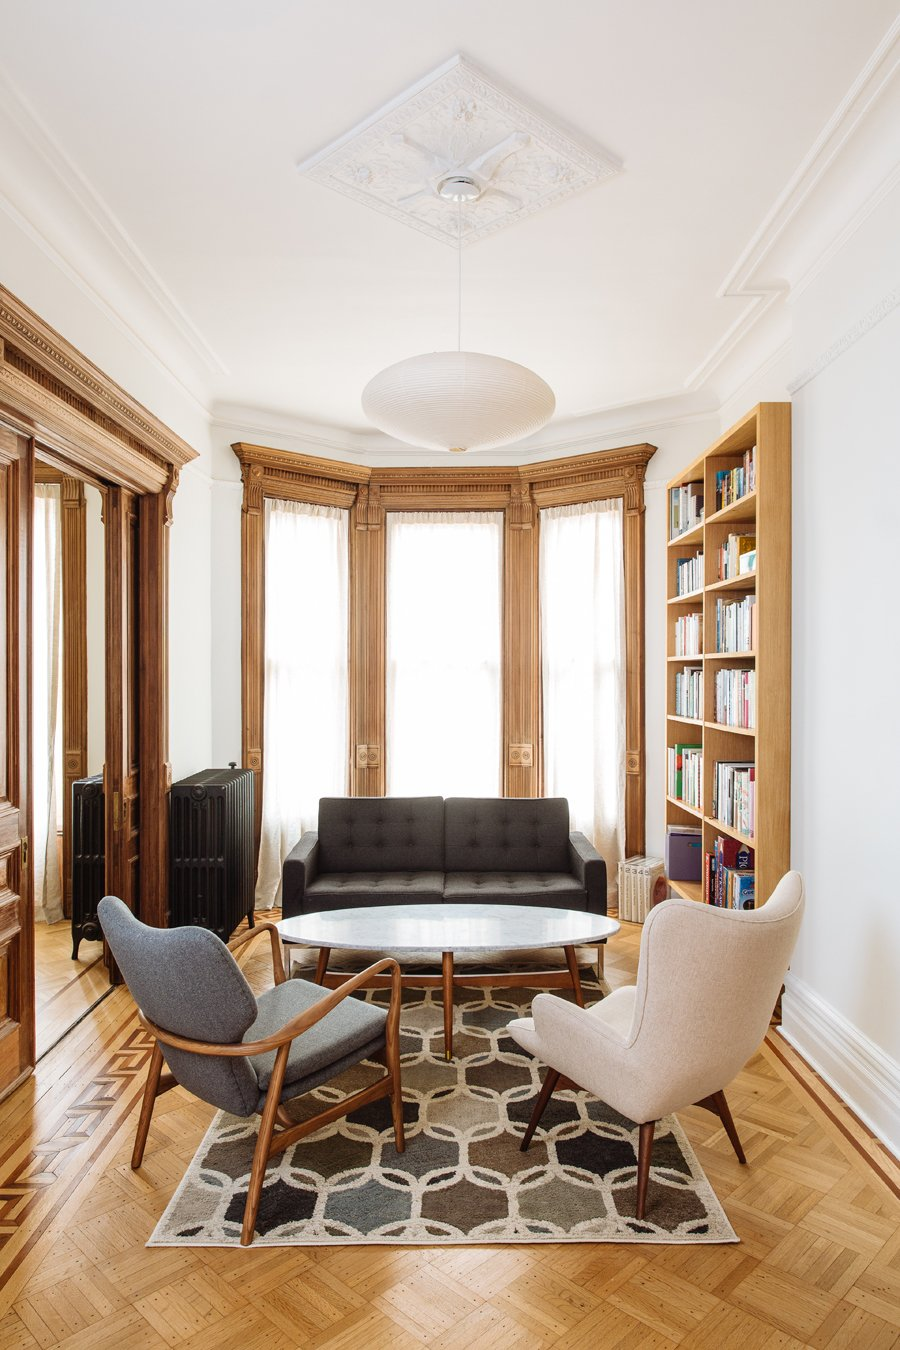 Study/Library  Tagged: Living Room, Recliner, Coffee Tables, Chair, Sofa, Pendant Lighting, Accent Lighting, Medium Hardwood Floor, and Light Hardwood Floor.  Brooklyn Brownstone by Sonya Lee Architect llc